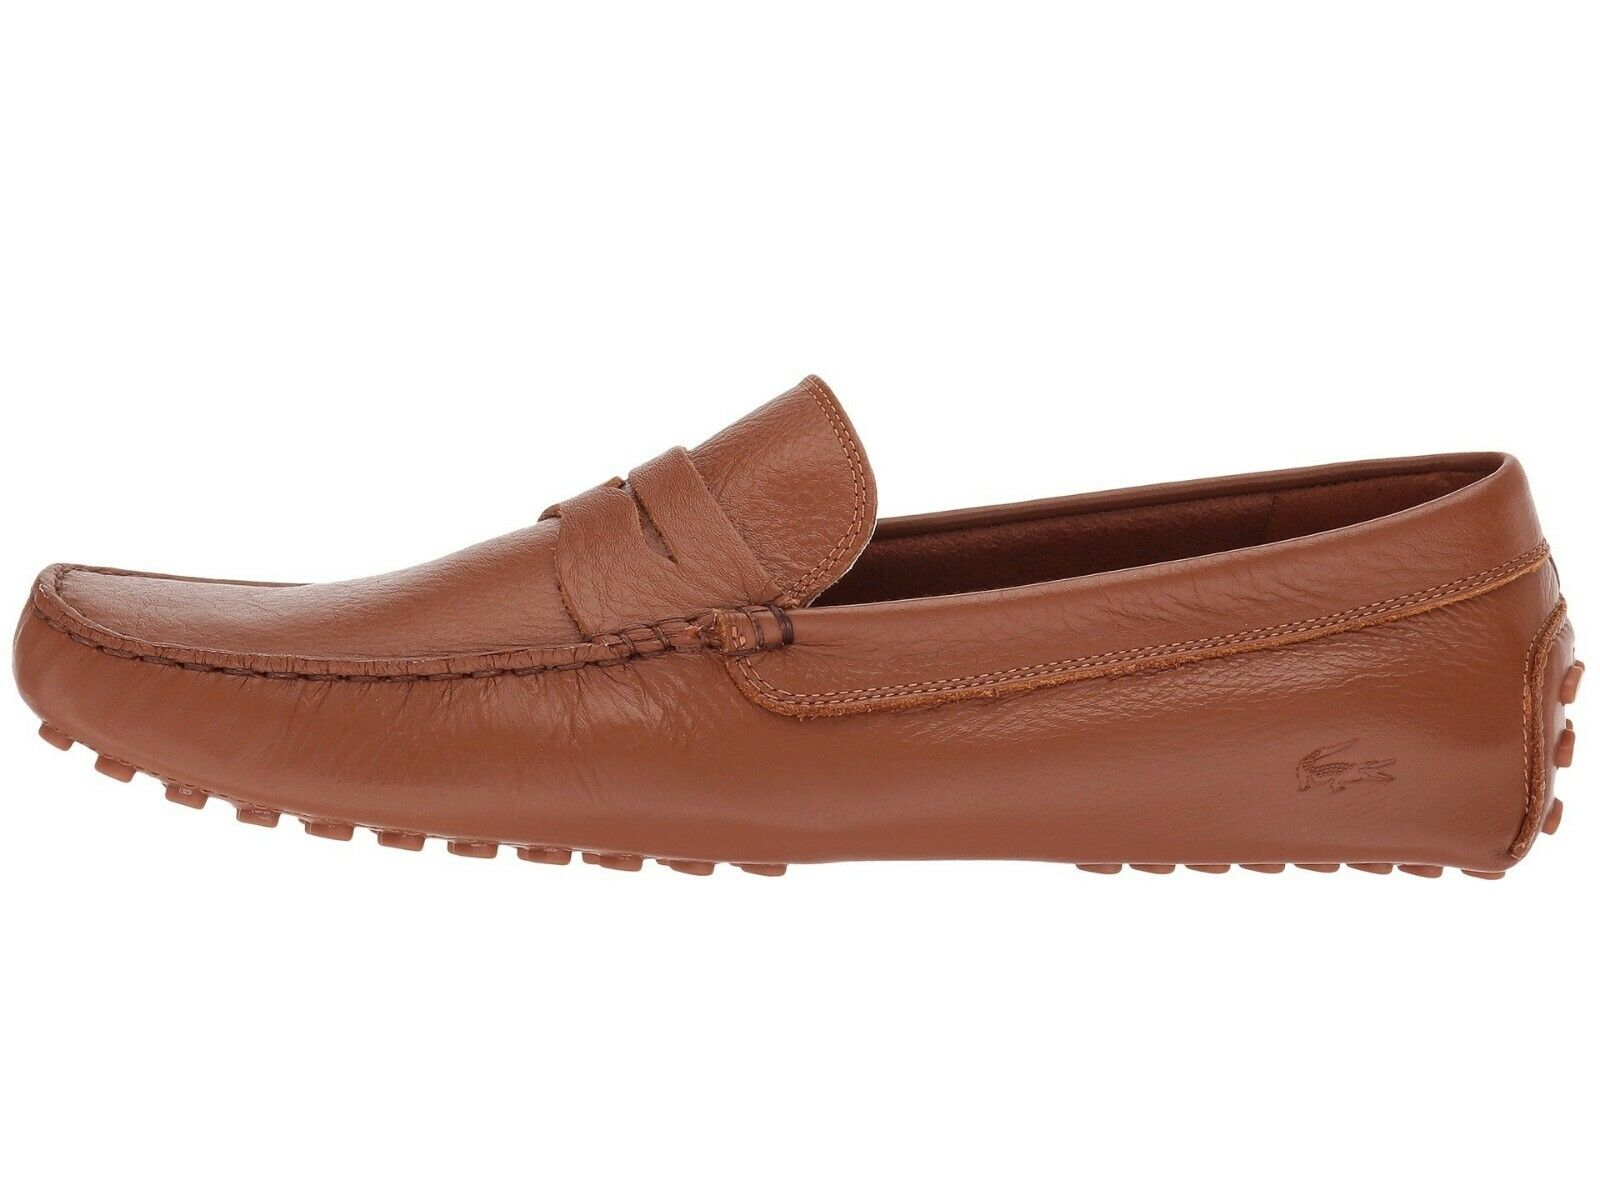 NEW Lacoste Men's Croc Casual Concours 118 1 Slip on Leather shoes Loafers Tan